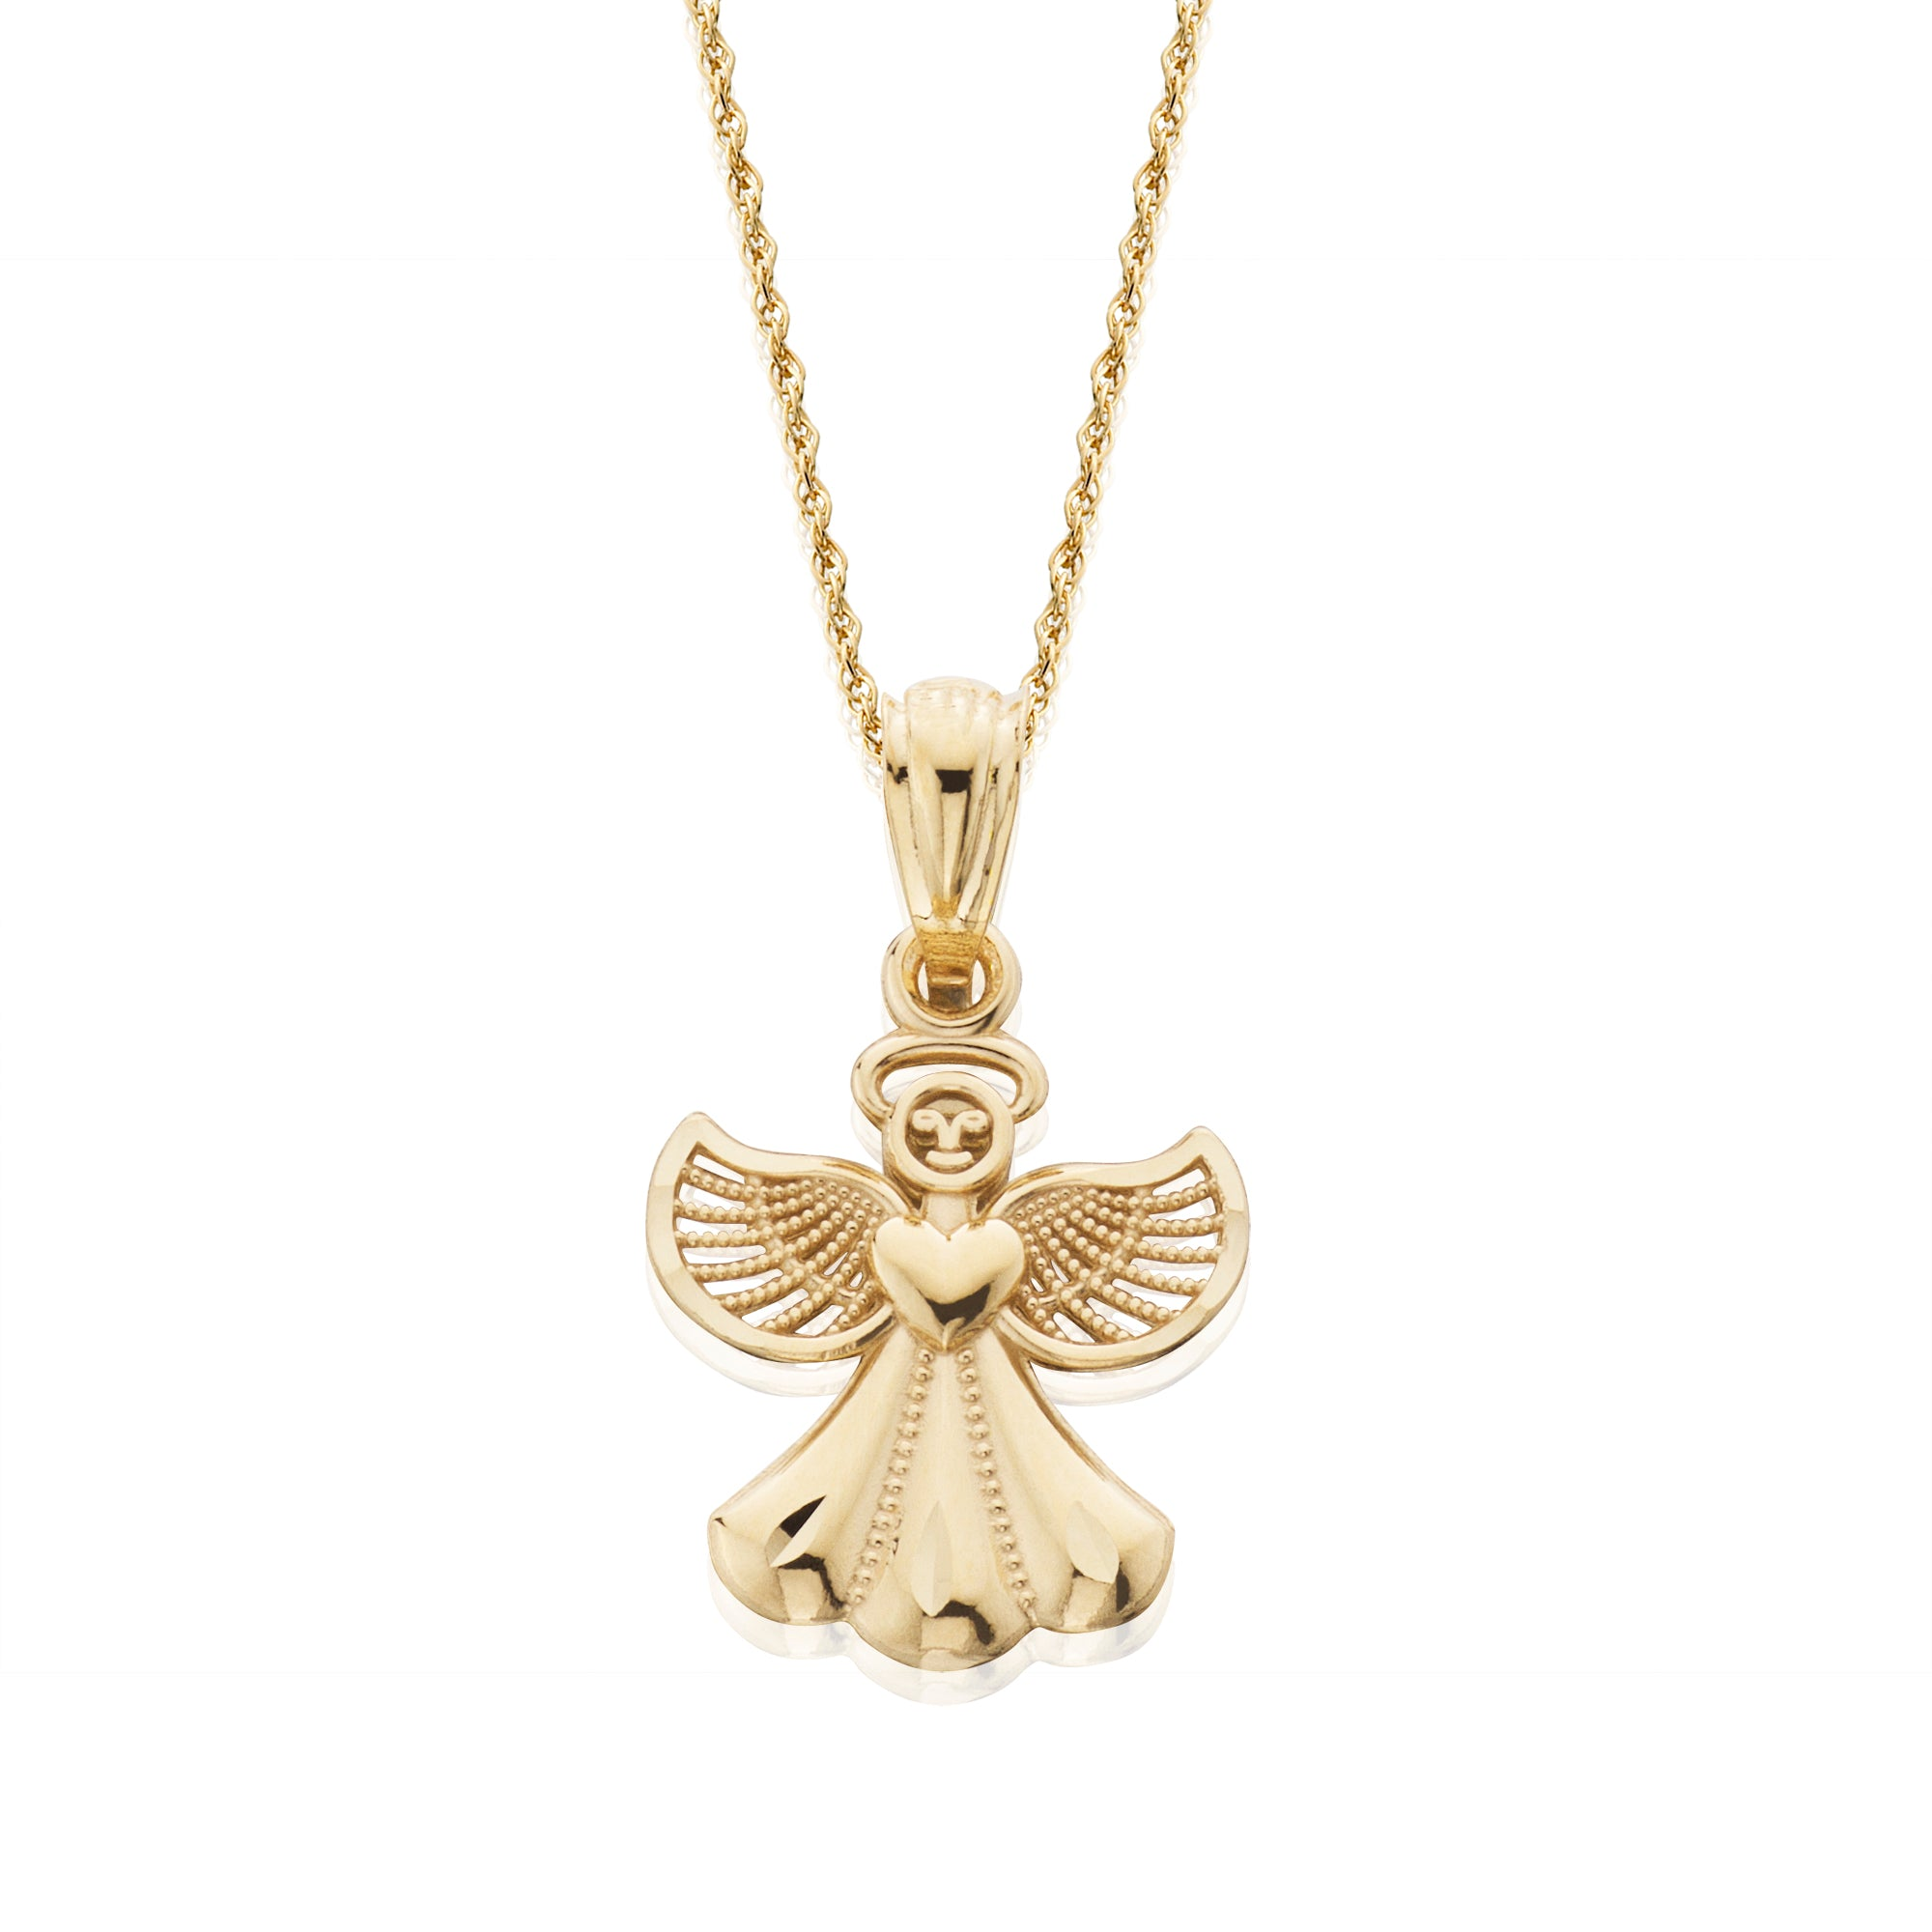 necklace accessorize angel thumb unadjustednonraw brass w pendant crystal me products